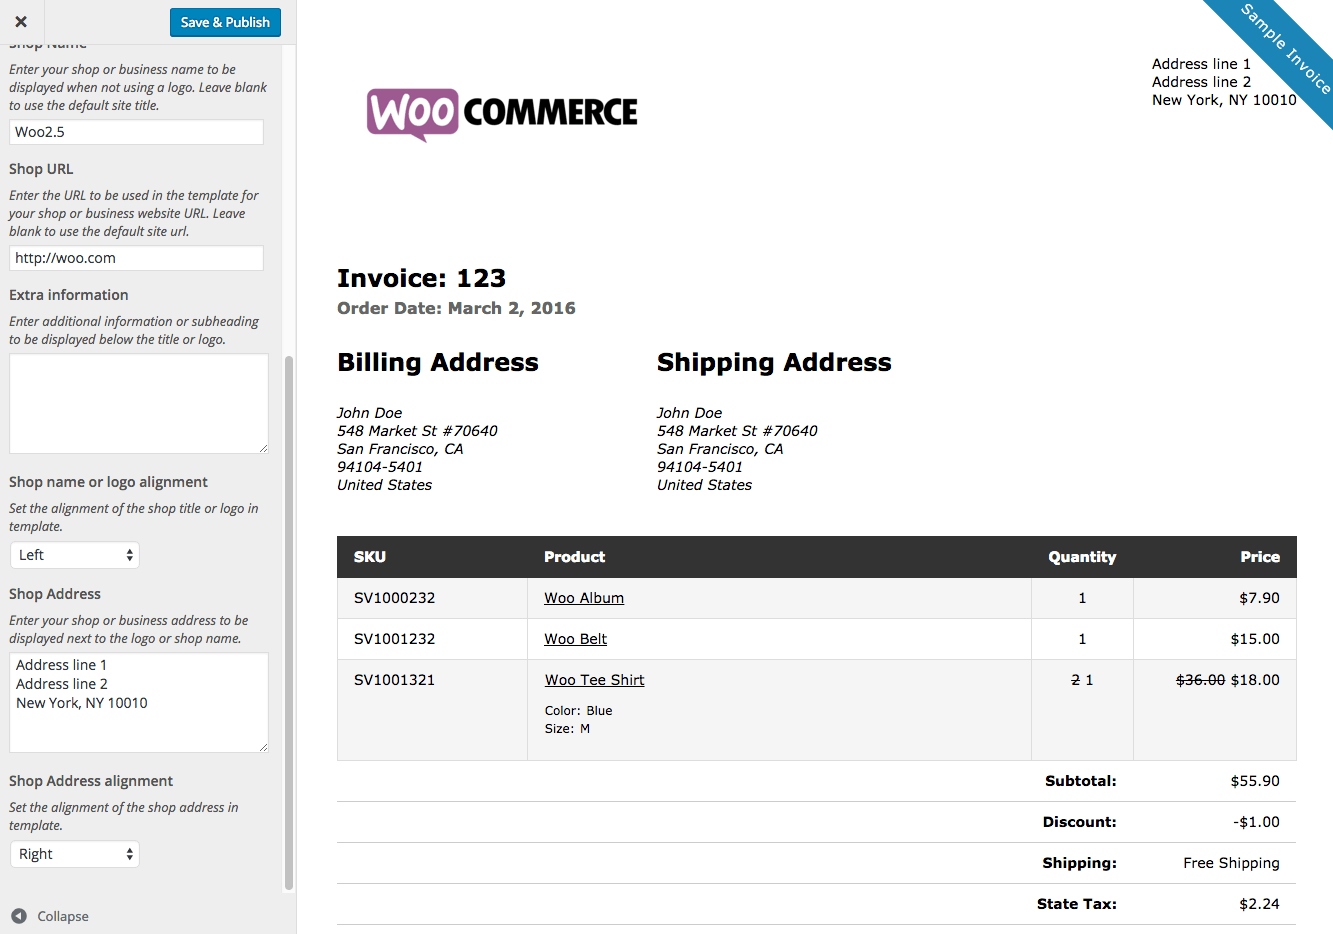 Aninsaneportraitus  Personable Print Invoices Amp Packing Lists  Woocommerce With Hot Woocommerce Print Invoices  Packing Lists Customizer With Enchanting Electronic Invoicing Solutions Also Retail Invoice Template In Addition Invoice Defined And What An Invoice Looks Like As Well As Toyota Highlander Dealer Invoice Additionally Weekly Invoice Template From Woocommercecom With Aninsaneportraitus  Hot Print Invoices Amp Packing Lists  Woocommerce With Enchanting Woocommerce Print Invoices  Packing Lists Customizer And Personable Electronic Invoicing Solutions Also Retail Invoice Template In Addition Invoice Defined From Woocommercecom